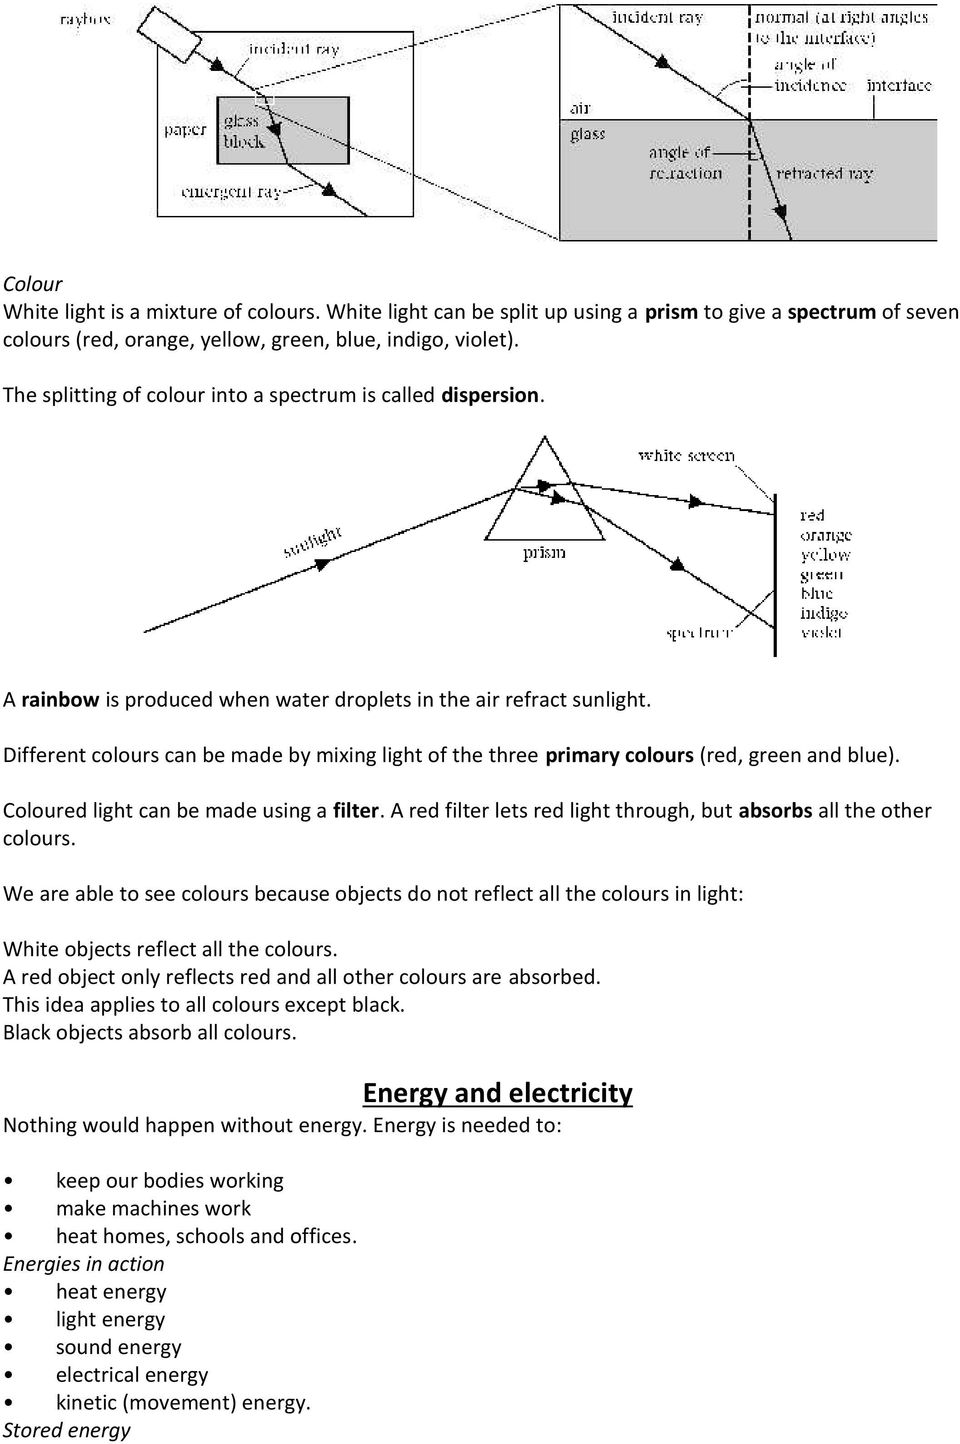 Standard Grade Bitesize Physics Useful Circuits Revision Page 4